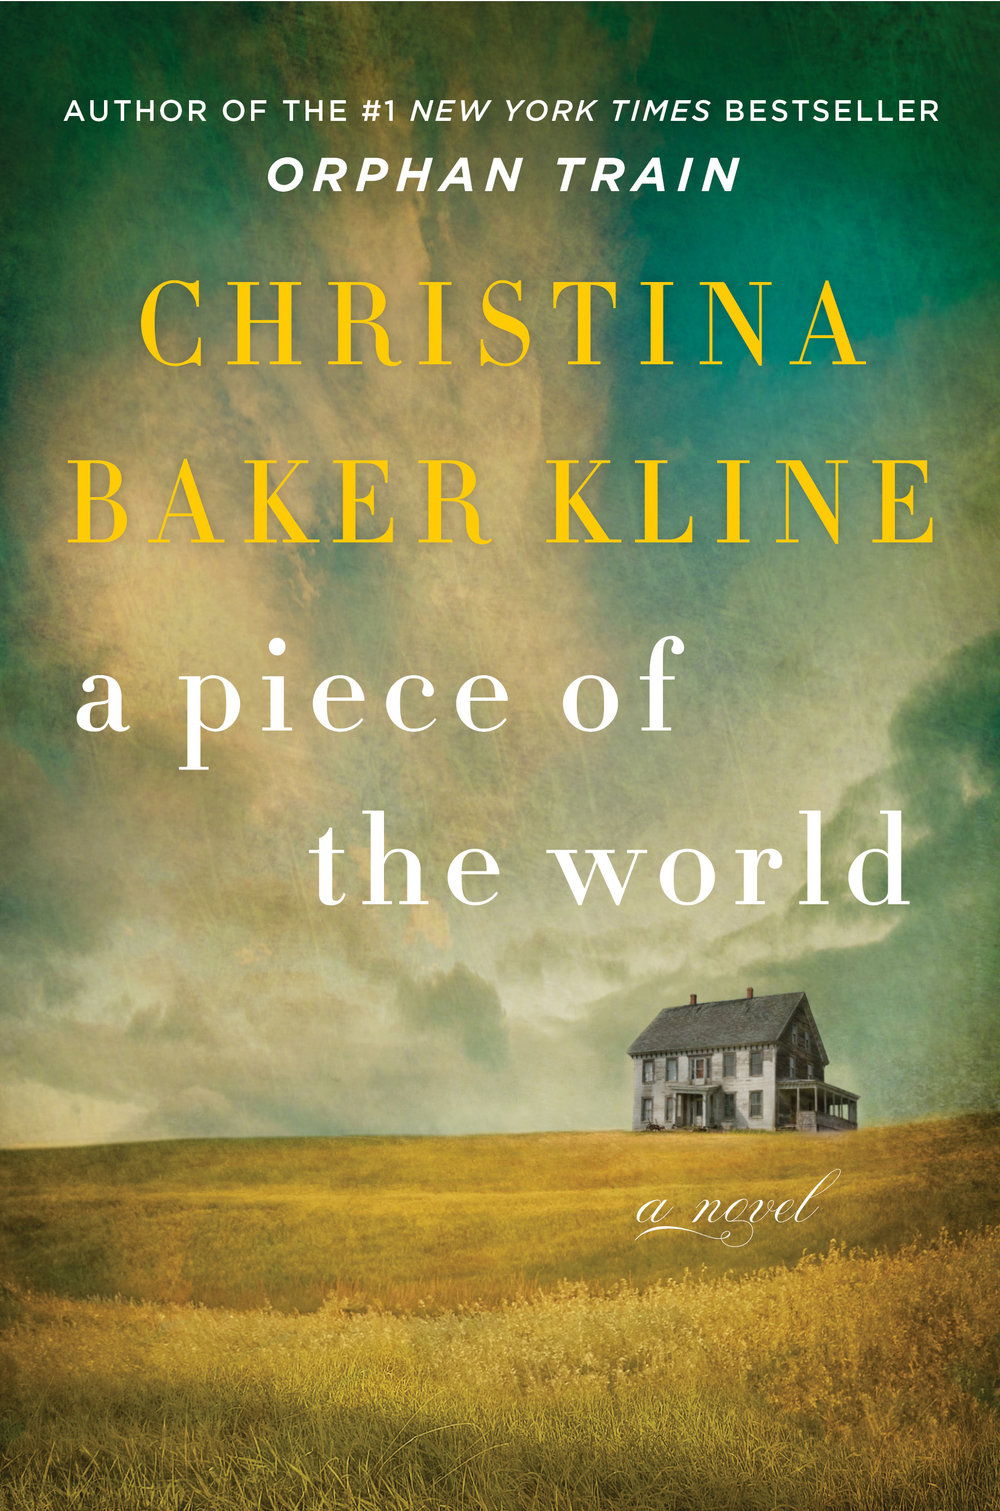 5 Books to Read About Art and Artists 2) A Piece of the World by Christina Baker Kline